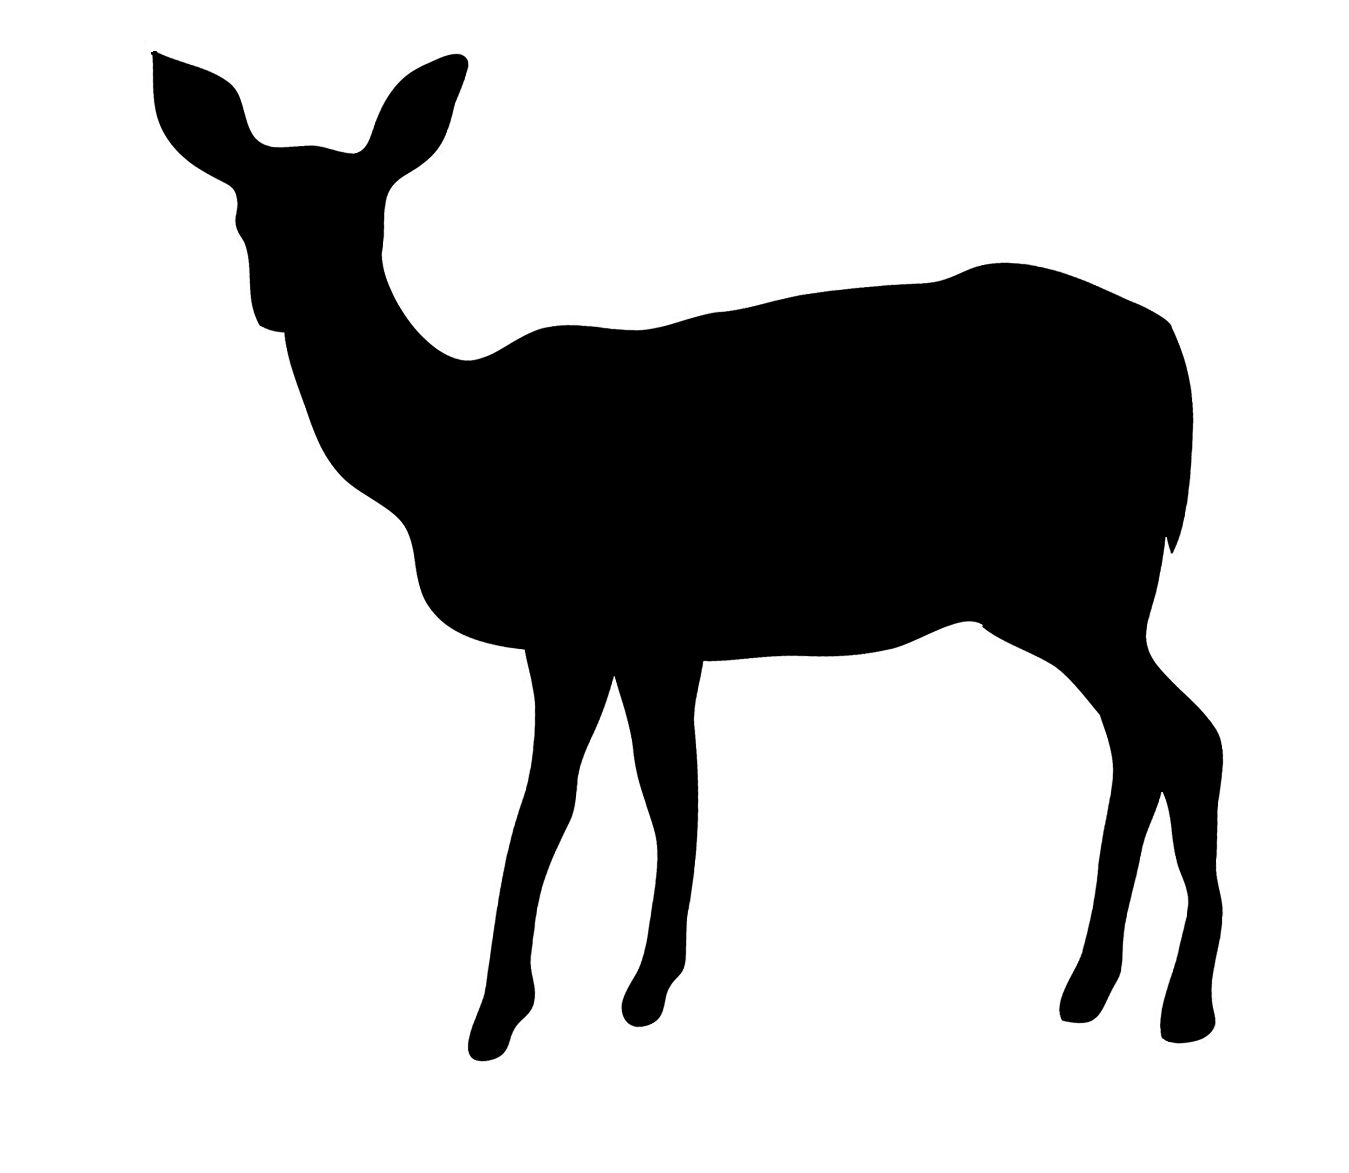 1349x1173 Free Download Doe Silhouette Clipart For Your Creation. Baby O'S